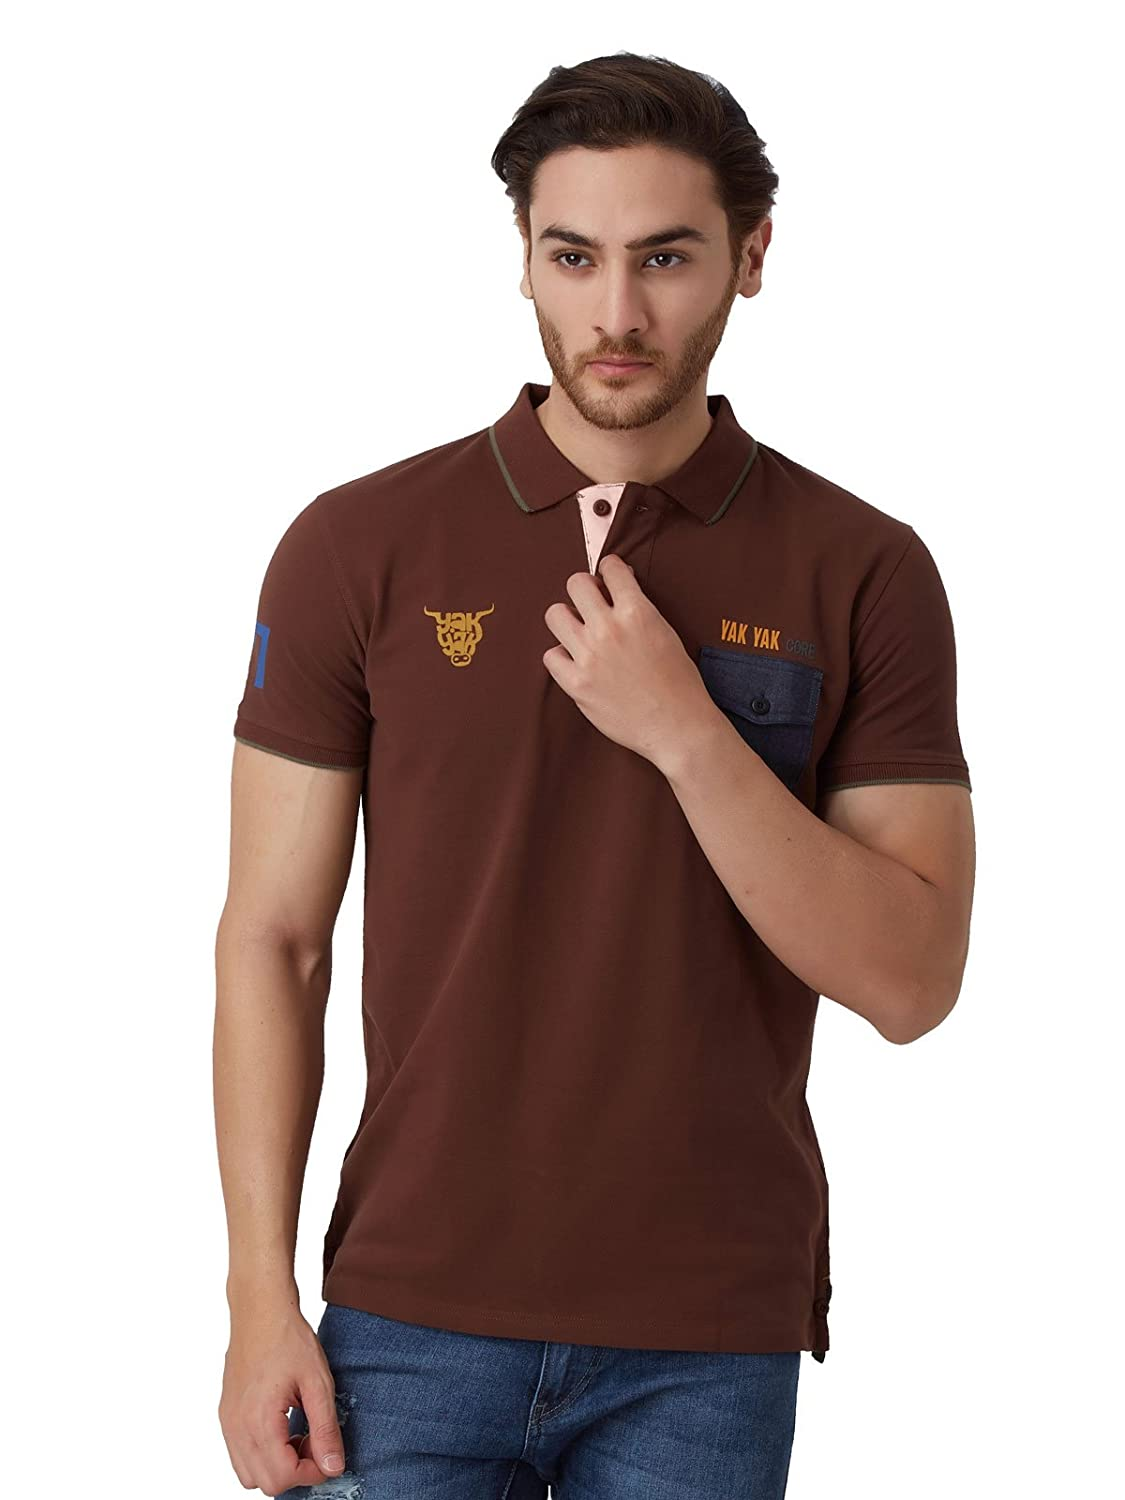 5456d83350a YAK YAK Mens Carafe Polo T-Shirt: Amazon.in: Clothing & Accessories